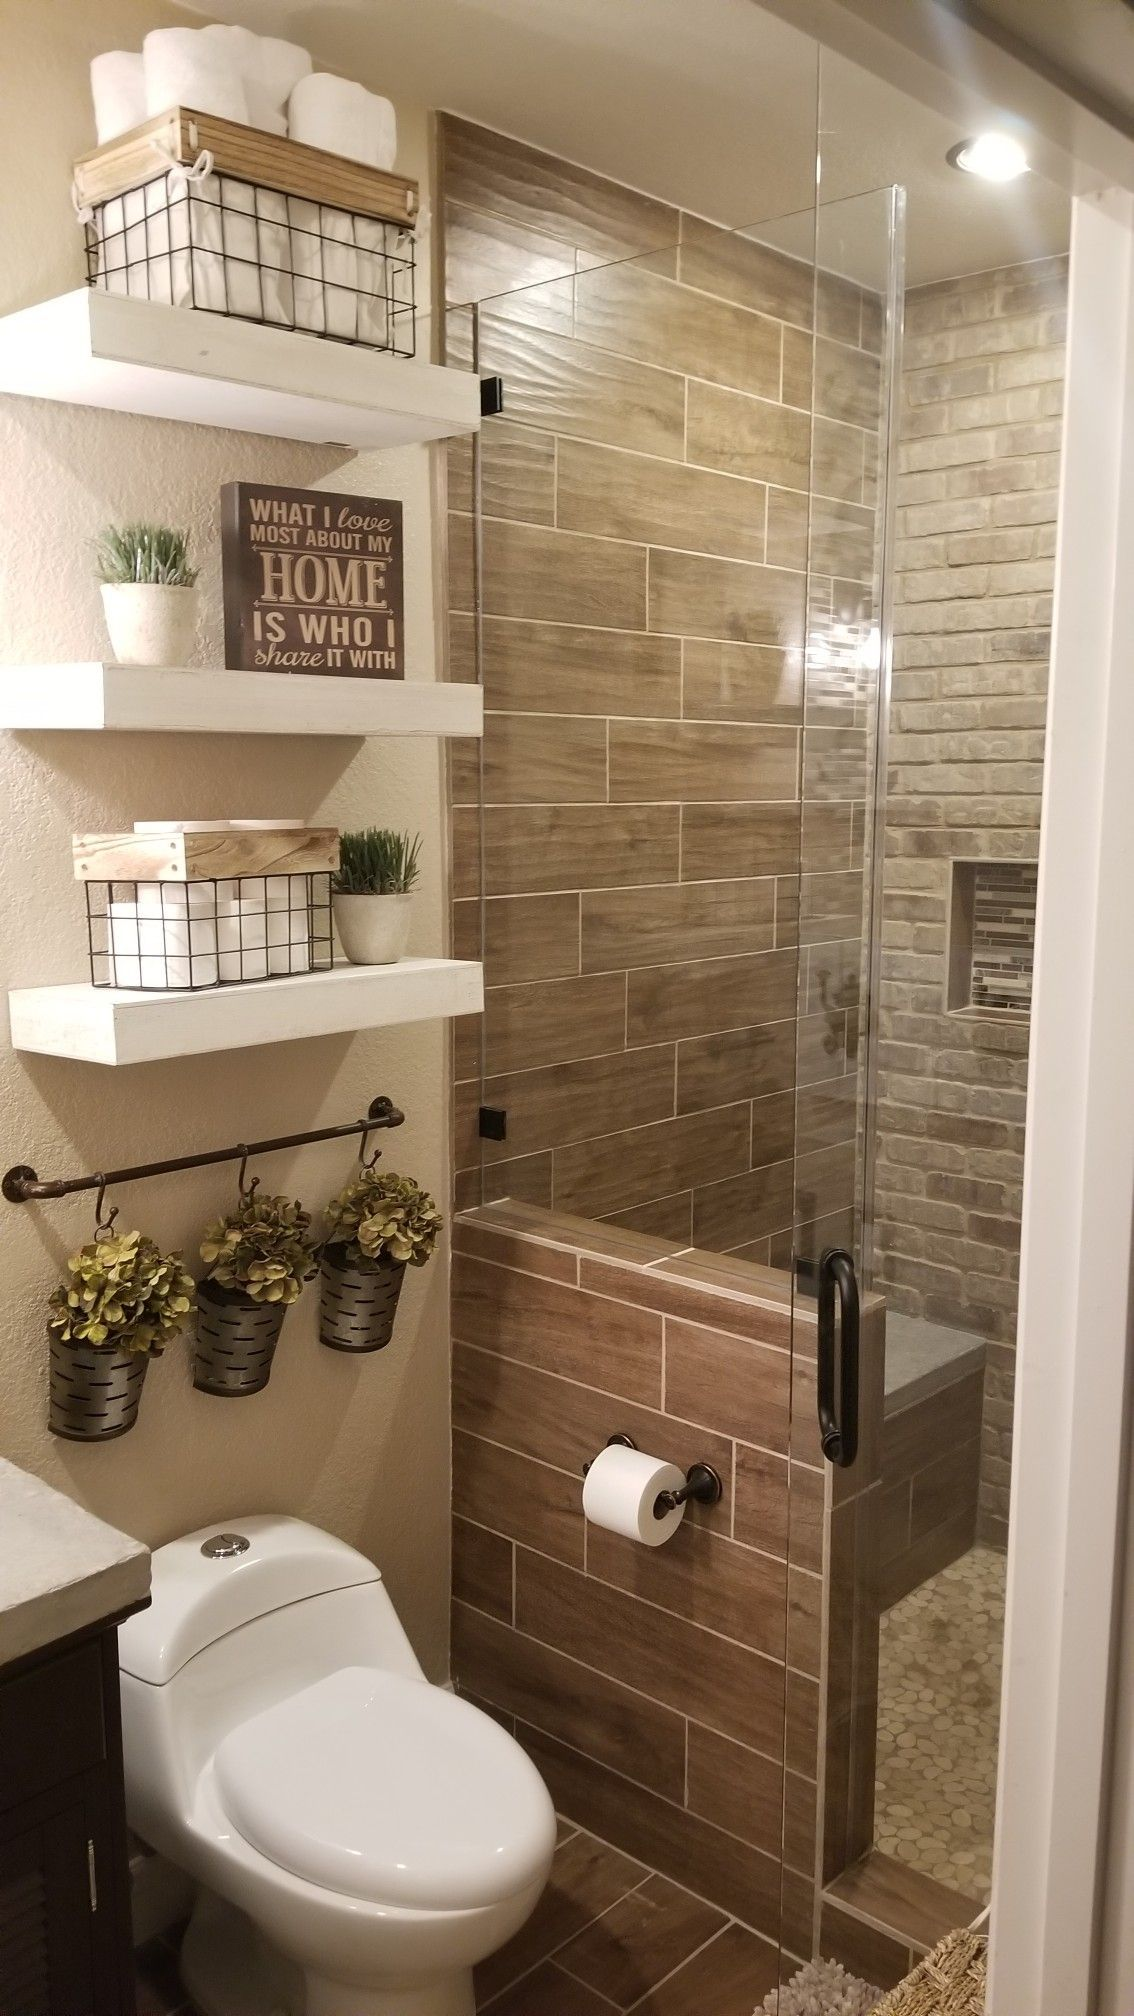 Our Guest Bathroom Decor Our House Ideas In 2019